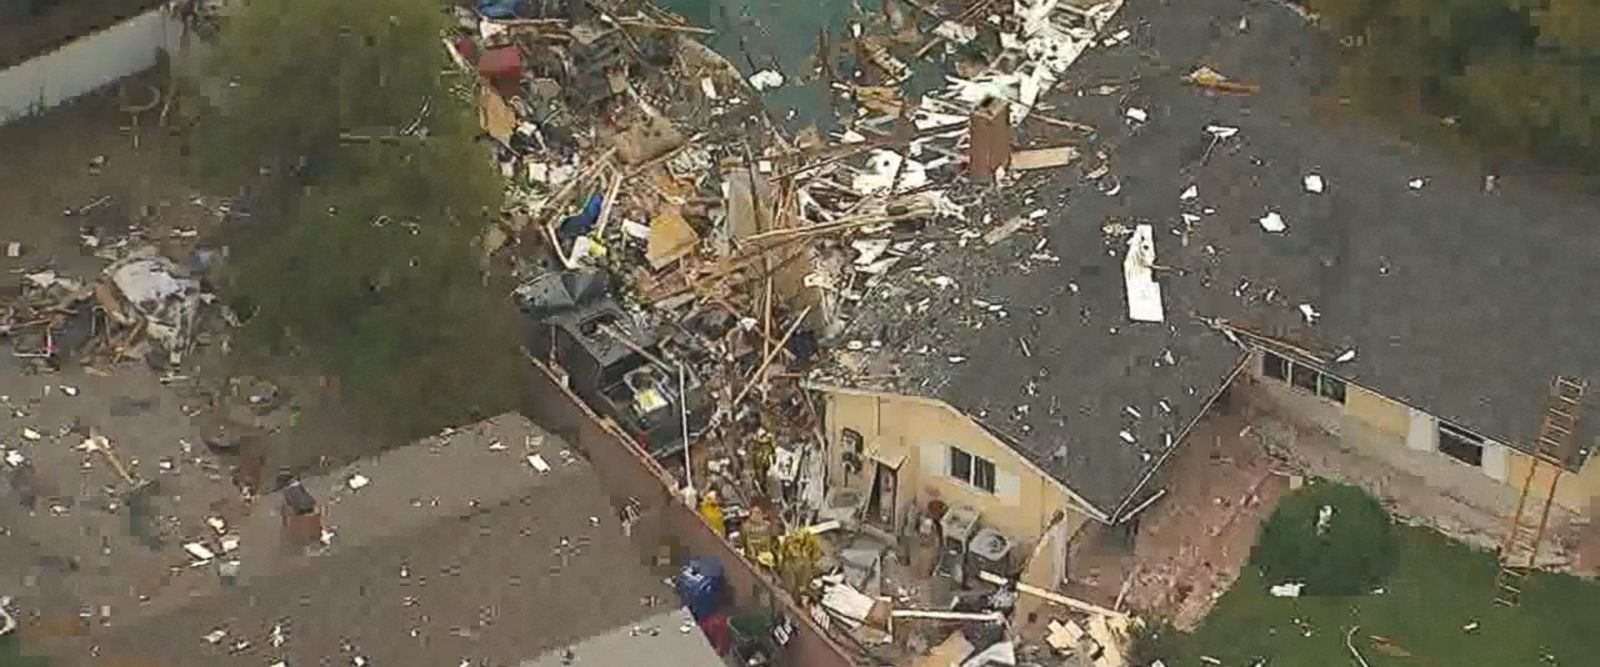 When a news helicopter flew over the damage, wrecked appliances, furniture, bricks and wooden beams could be seen scattered over multiple properties.